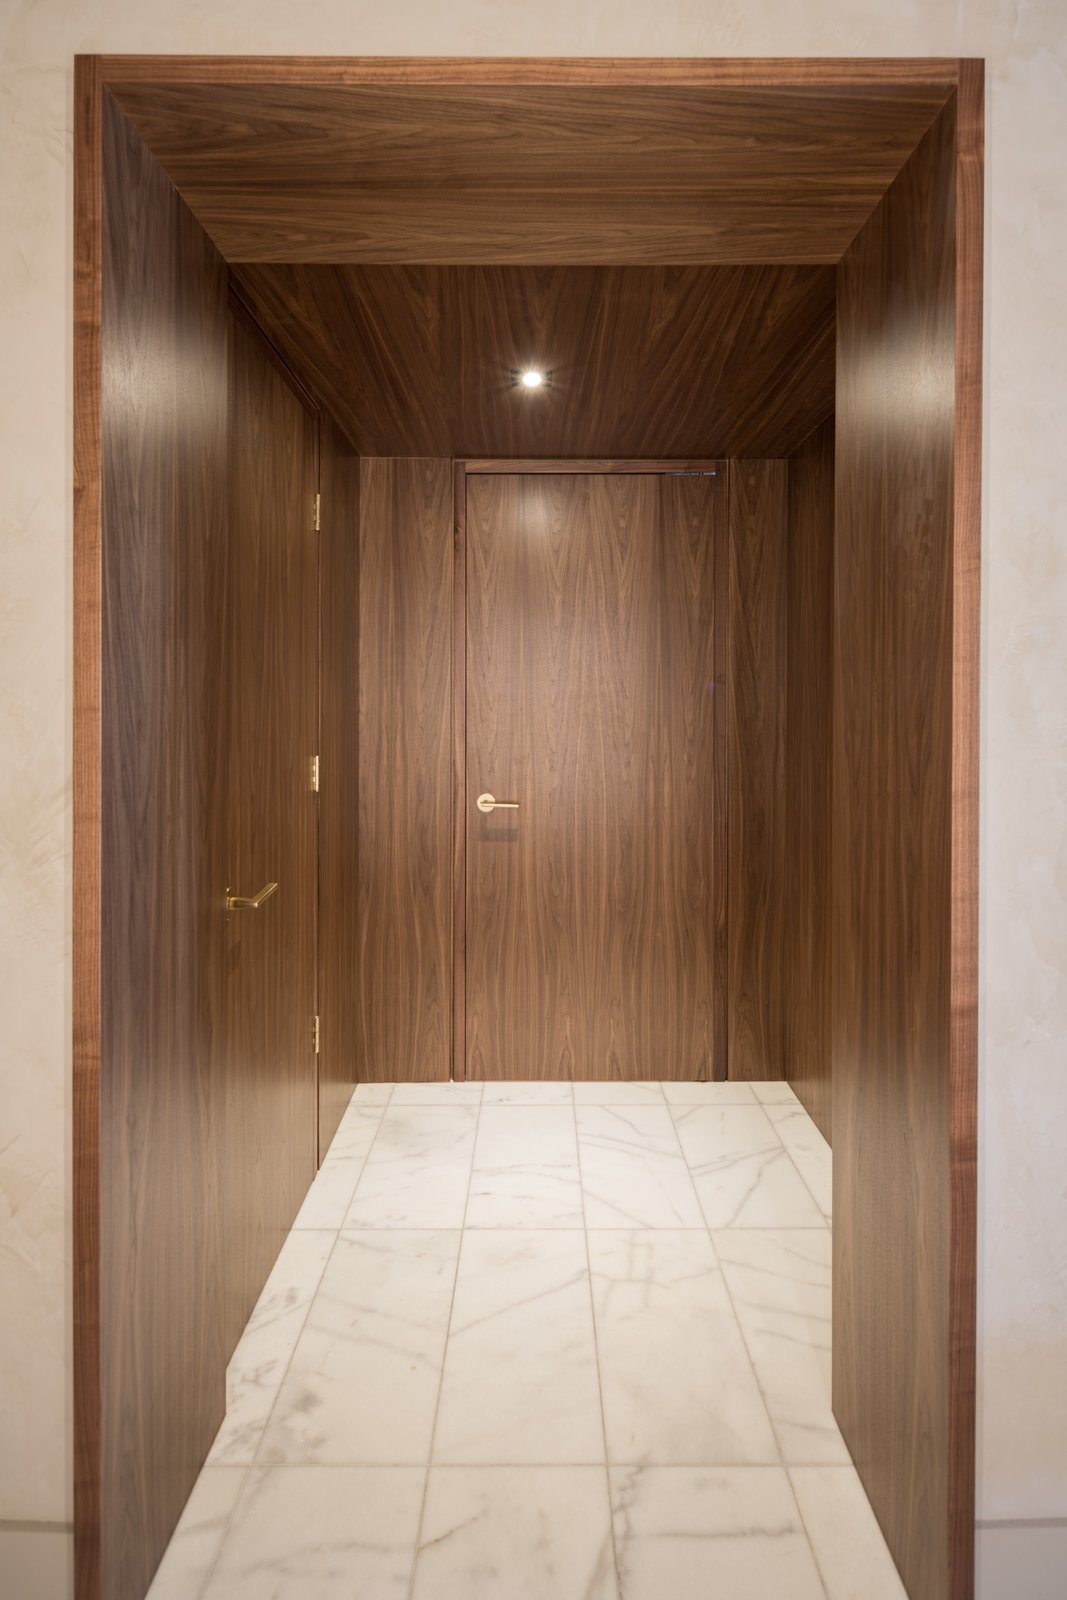 Here is the entry to the Master Suite which is where we connected the two separate suites, to the left is the entry closet.  Thompson Hotel Private Suite by ANTHONY PROVENZANO ARCHITECTS